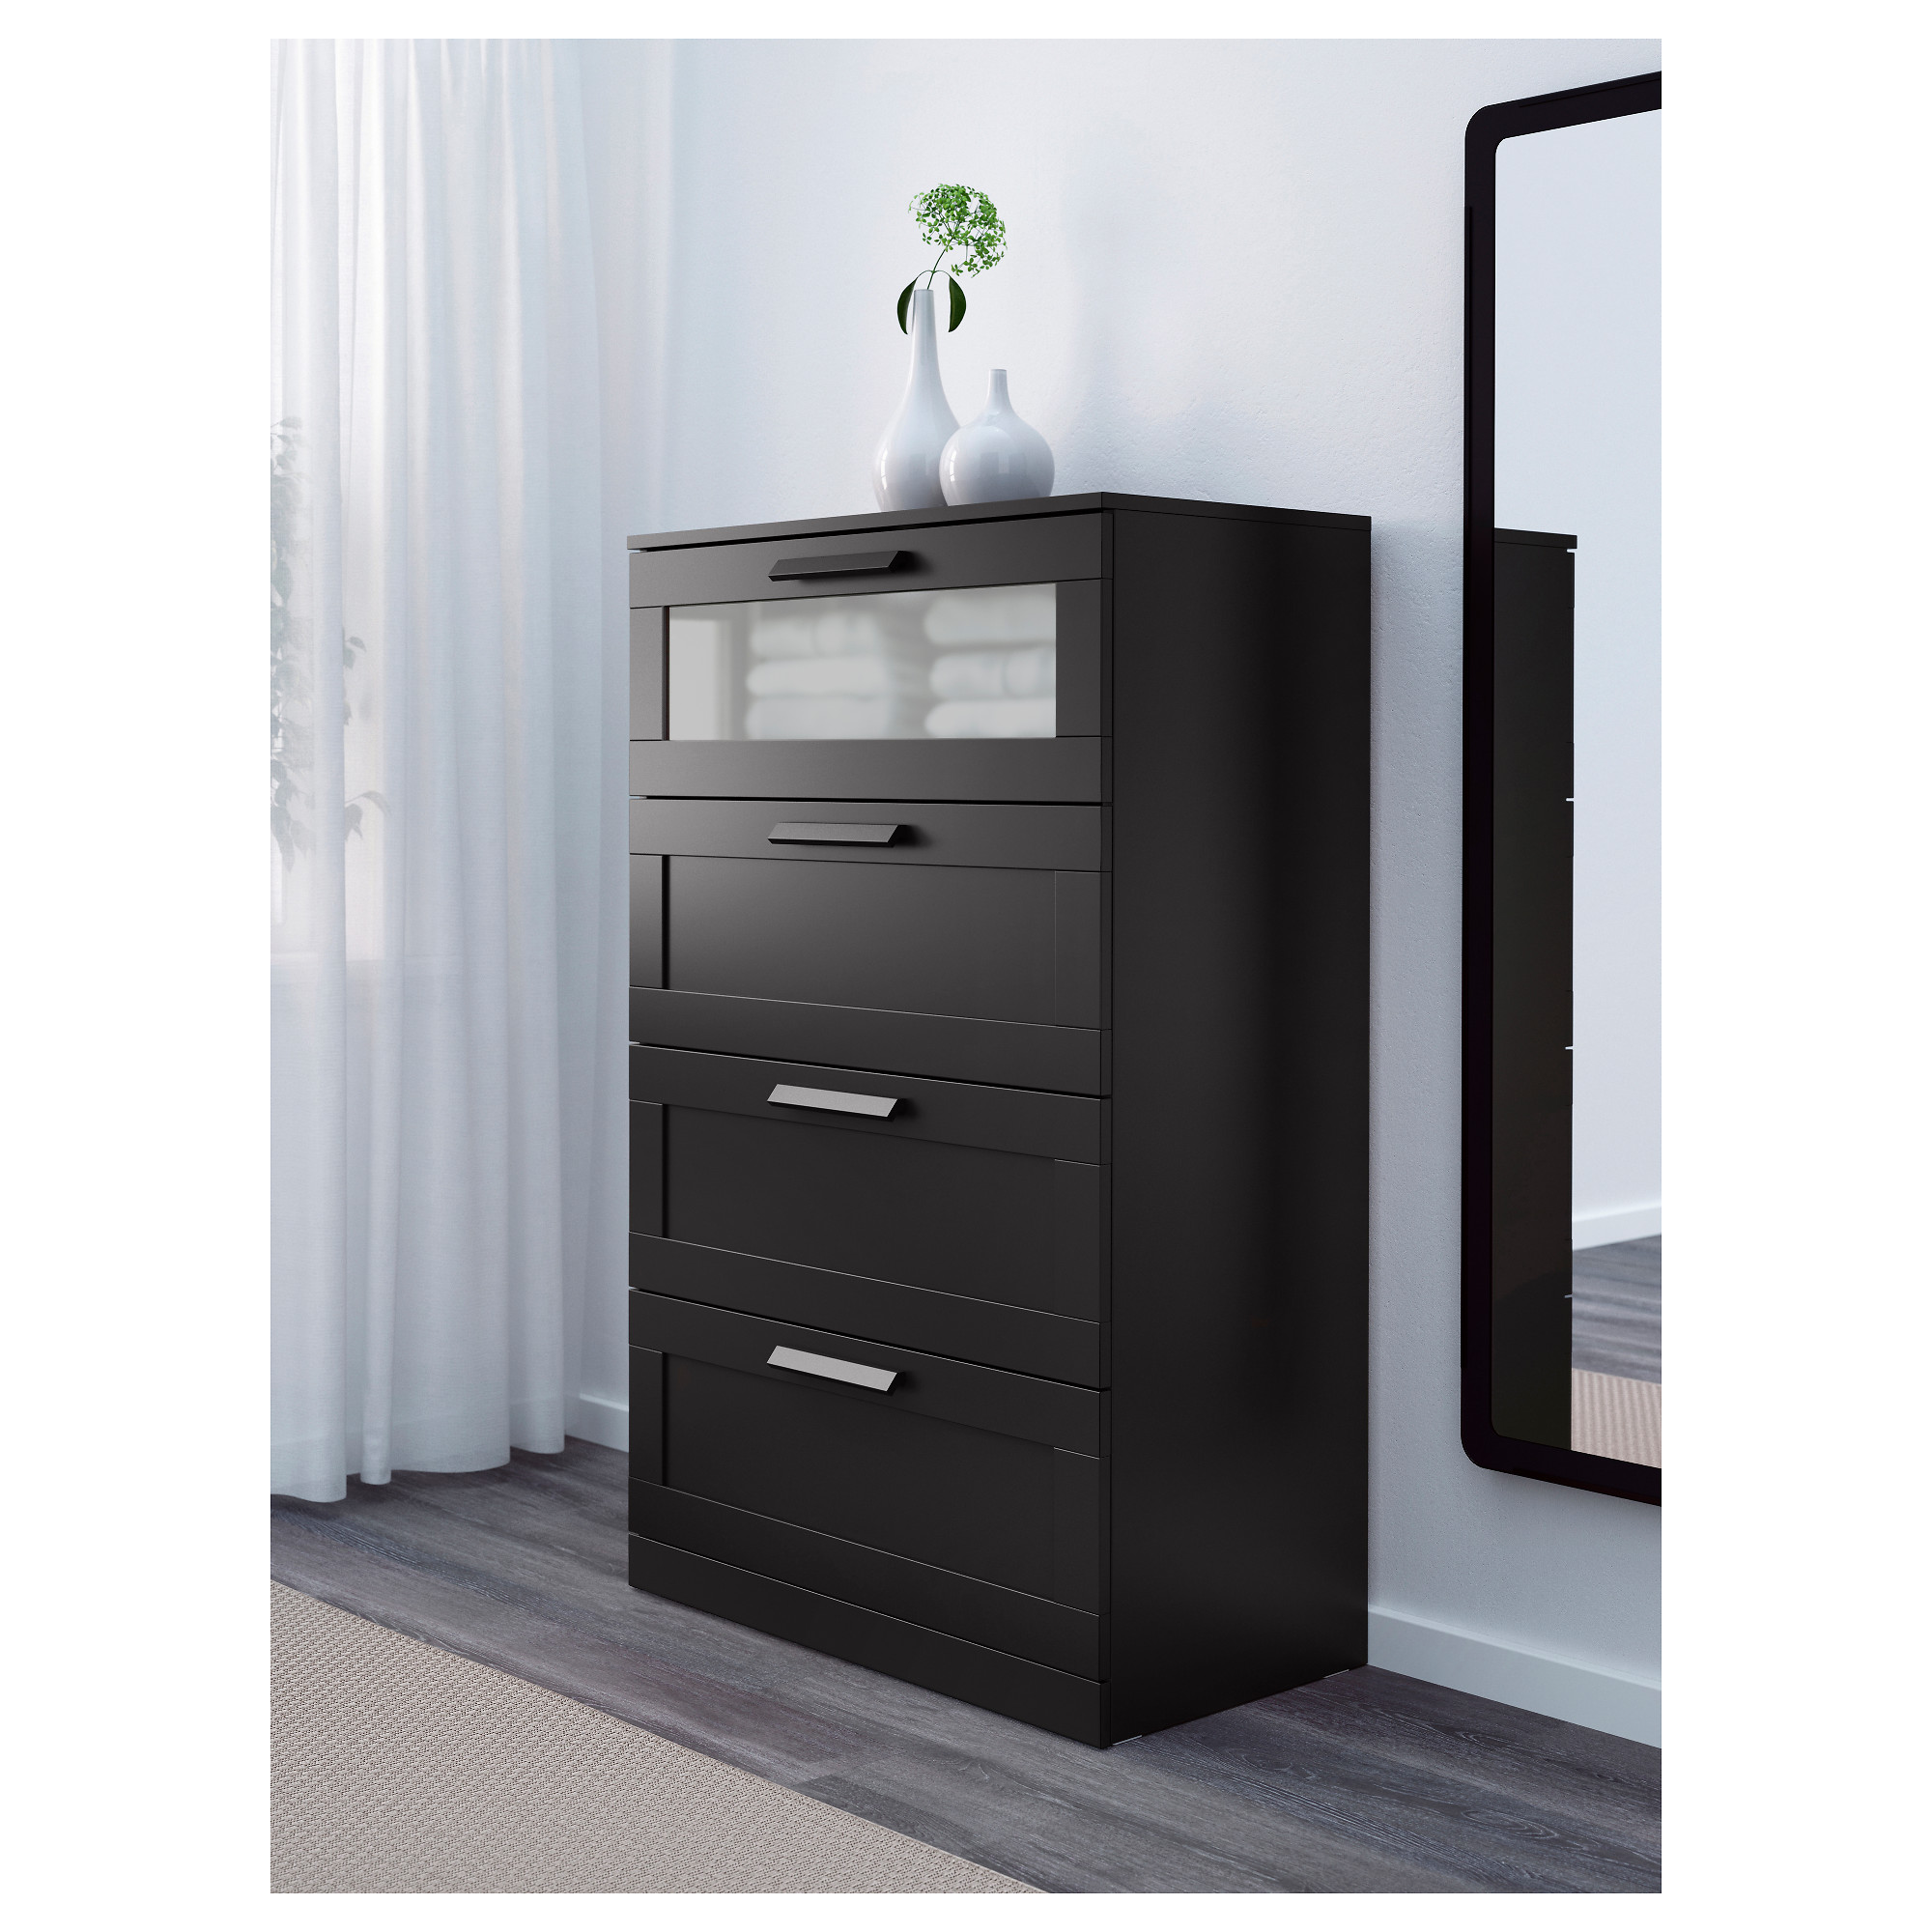 BRIMNES - chest of 4 drawers, black/frosted glass | IKEA ...